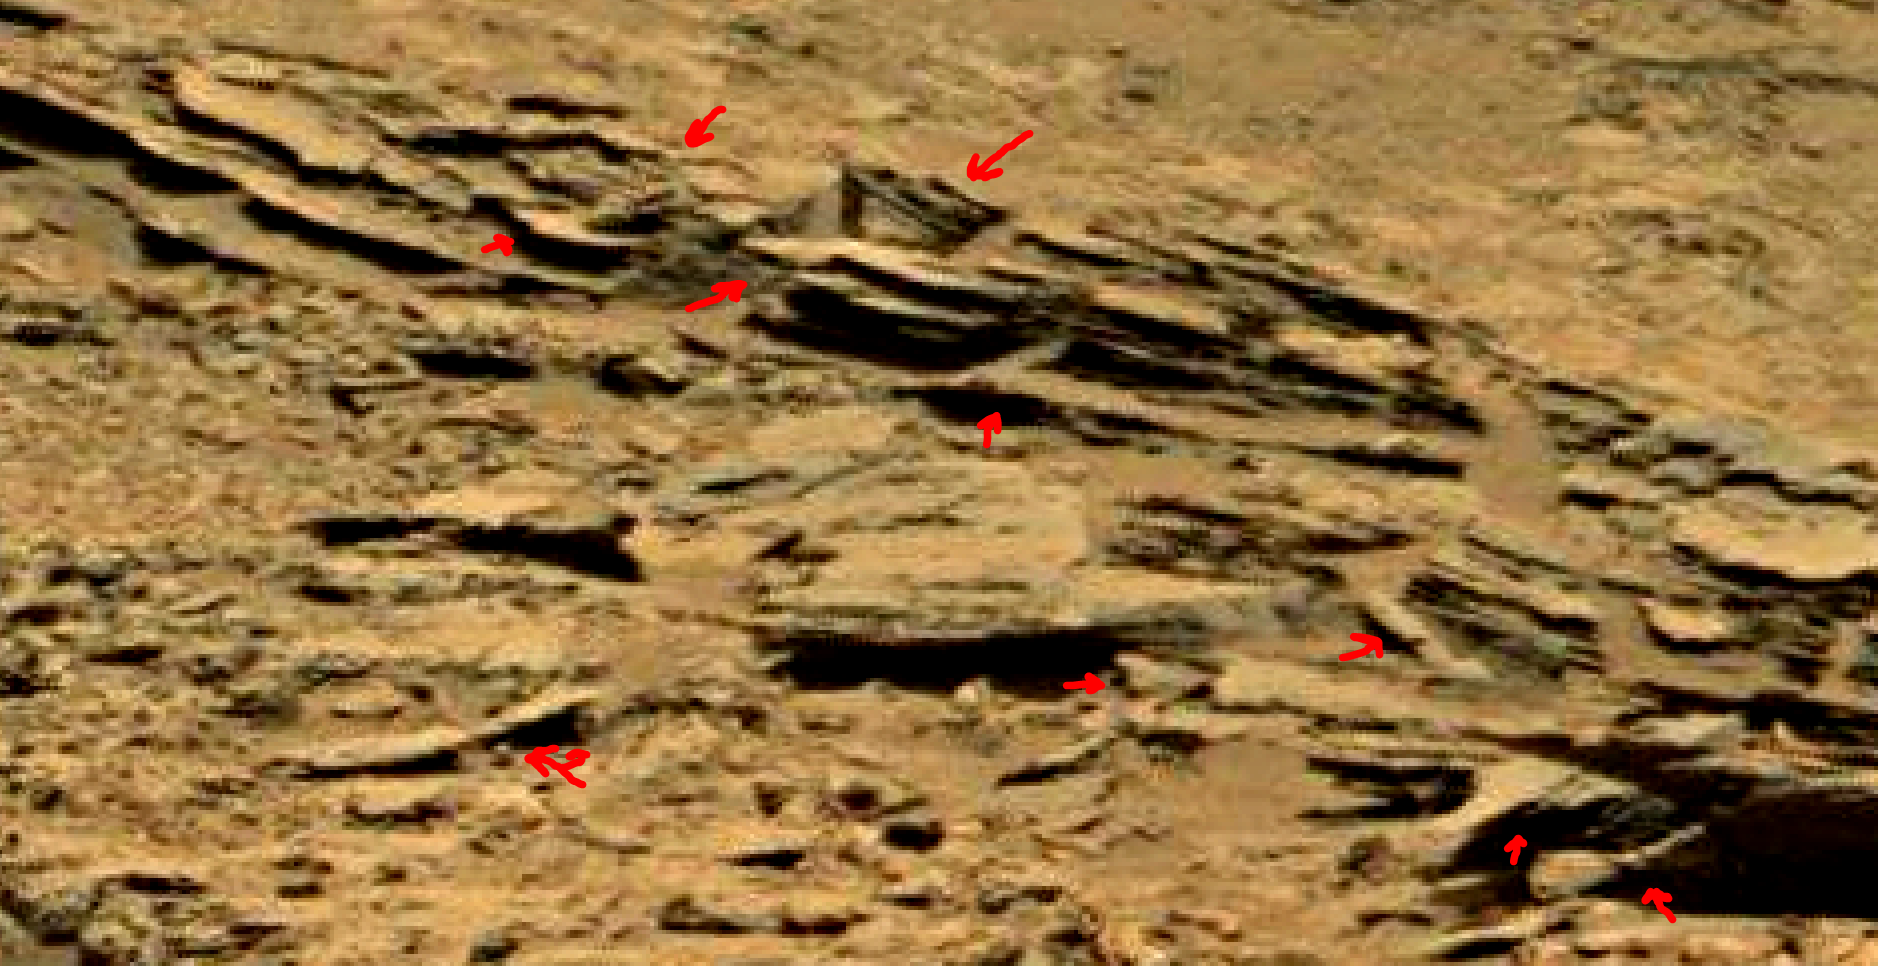 mars sol 1353 anomaly-artifacts 69a was life on mars